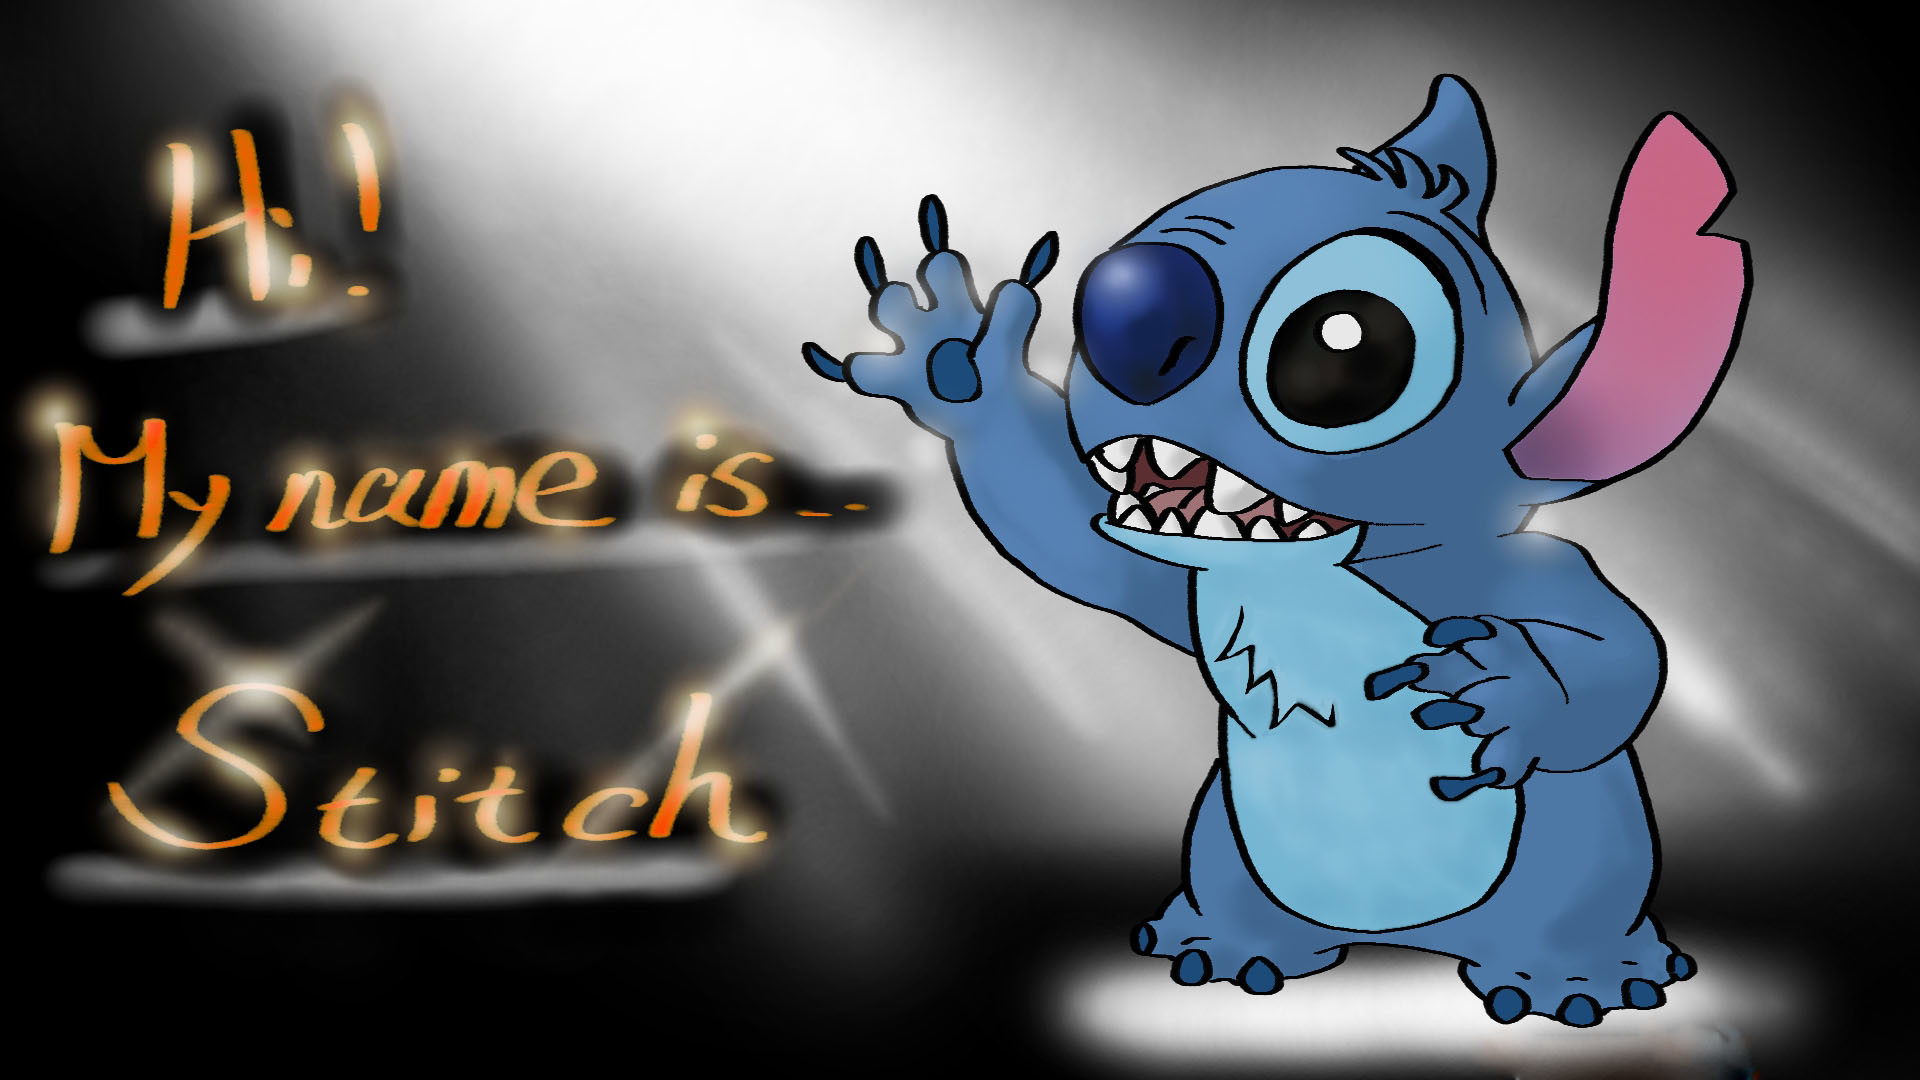 1920x1080 Lilo Stitch Cartoons Wallpapers Lilo And Stitch Wallpaper Wallpapers)